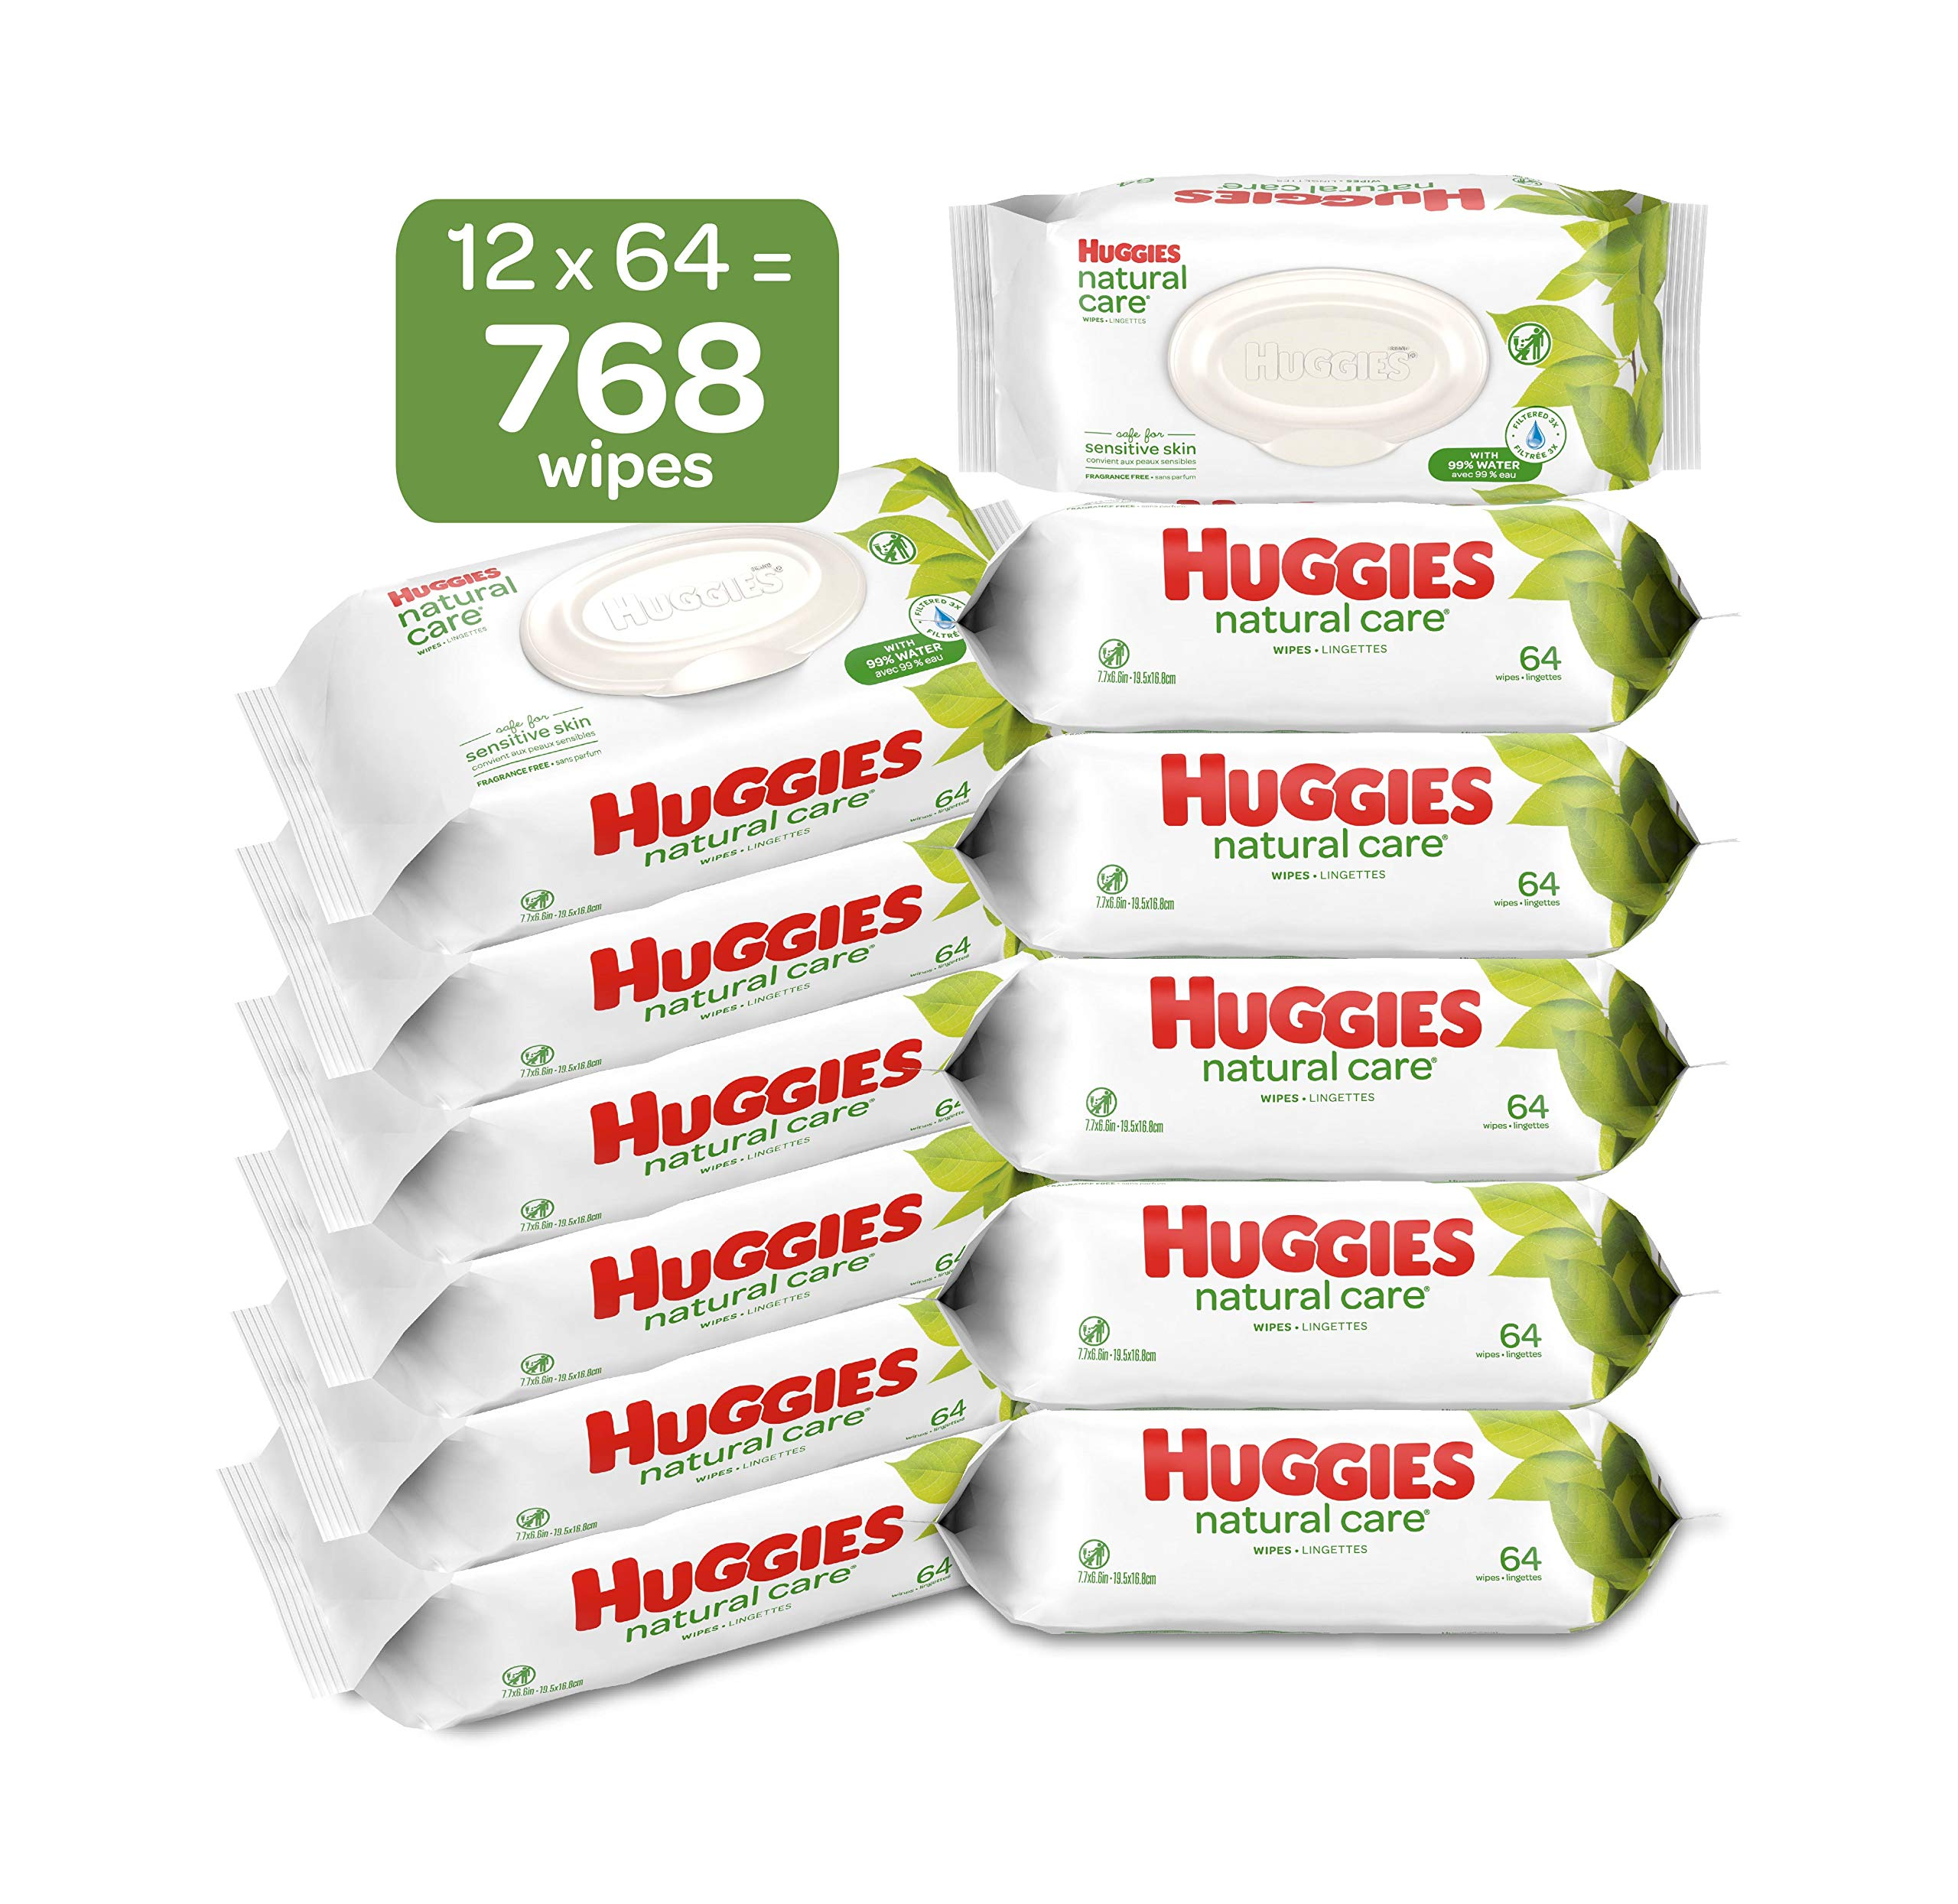 HUGGIES Natural Care Unscented Baby Wipes, Sensitive, Water-Based, 12 Total Flip Top Packs, 768 Count by HUGGIES